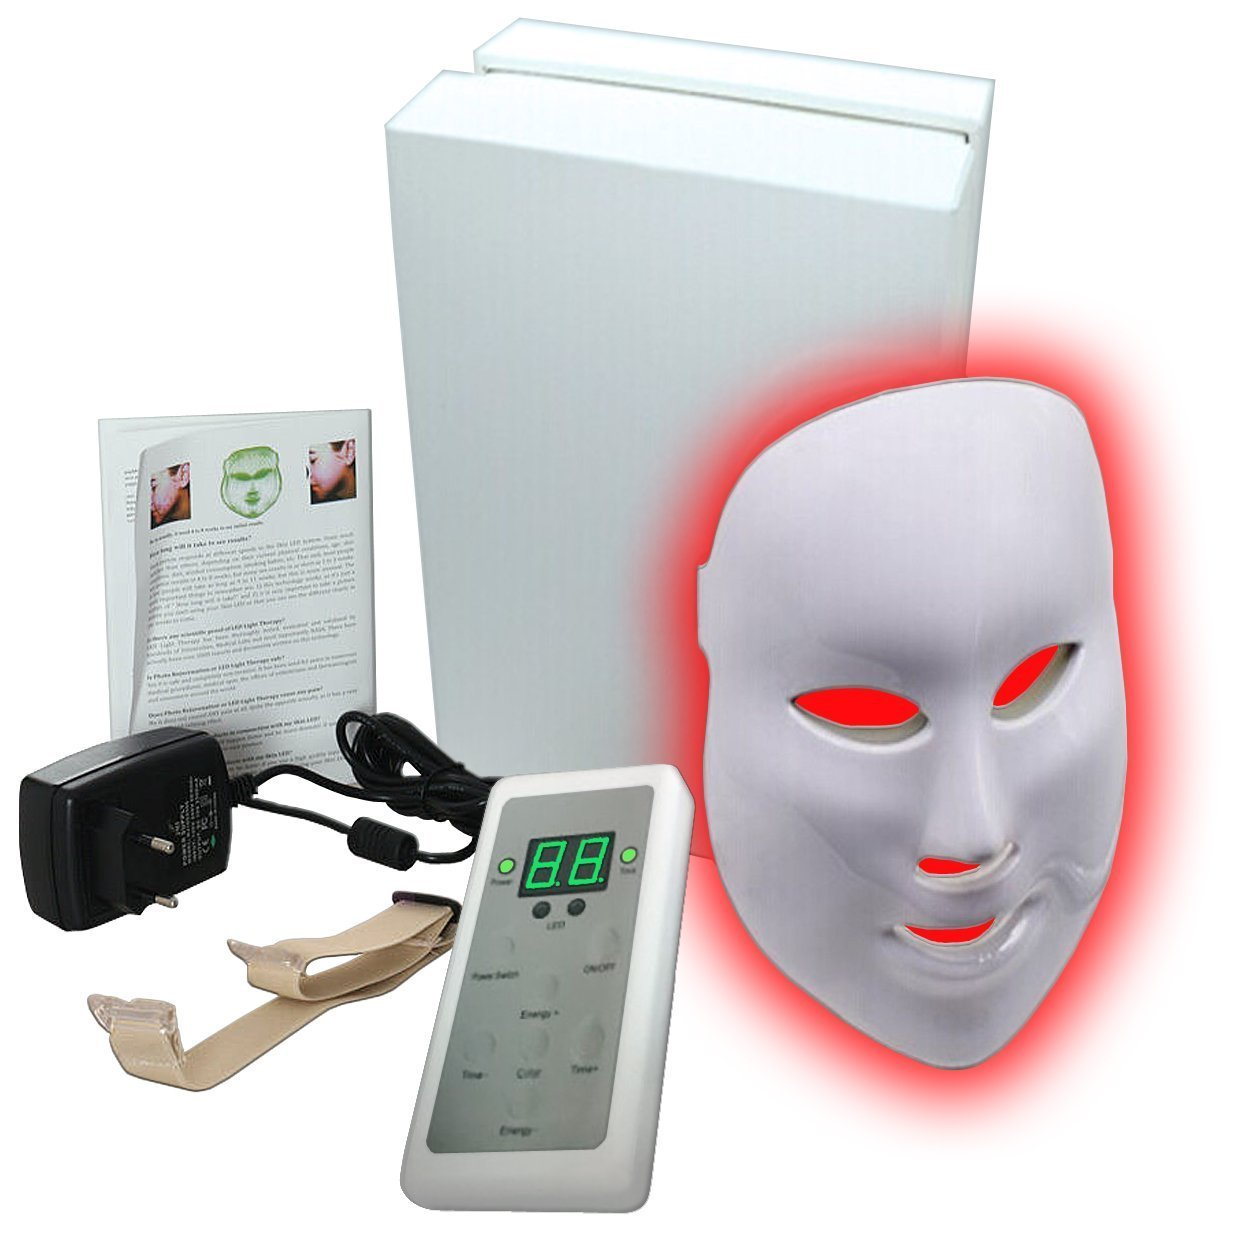 7 Color LED Mask Photon Light Skin Rejuvenation Therapy Facial Mask Photon Photodynamics Beauty Facial Peels Machine Skin Care rechargeable pdt heating led photon bio light therapy skin care facial rejuvenation firming face beauty massager machine